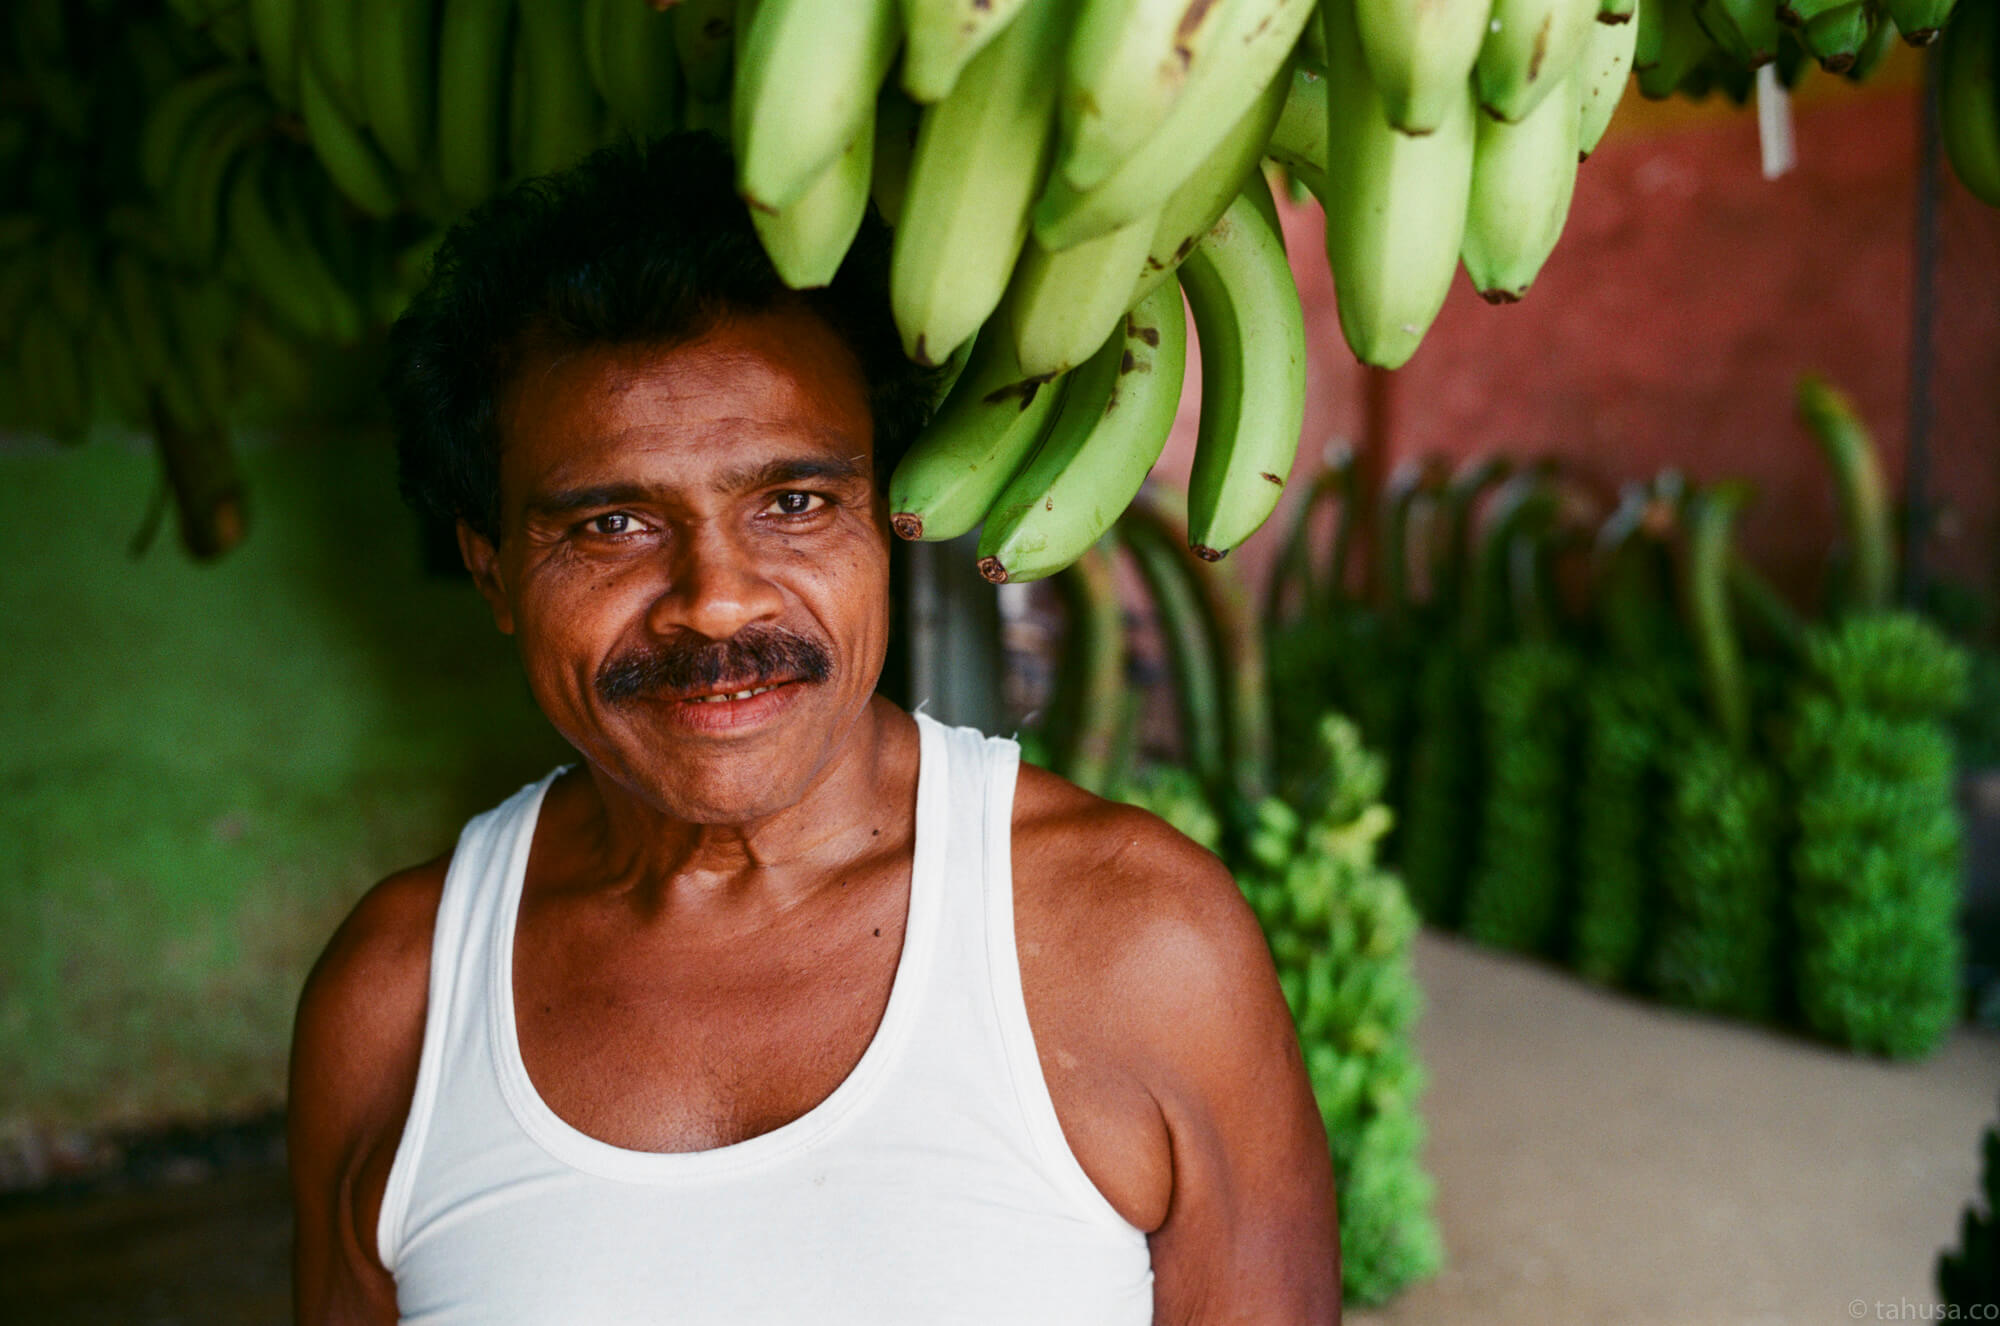 banana-shop-fruit-market-斯里蘭卡-Colombo-pettah-market-manning-sri-lanka-sri-lankan-nuwara-eliya-colombo-using-film-camera-with-analog-fuji-superia-premium-400-iso400-with-leica-summilux-35mm-f1.4-asph-fle